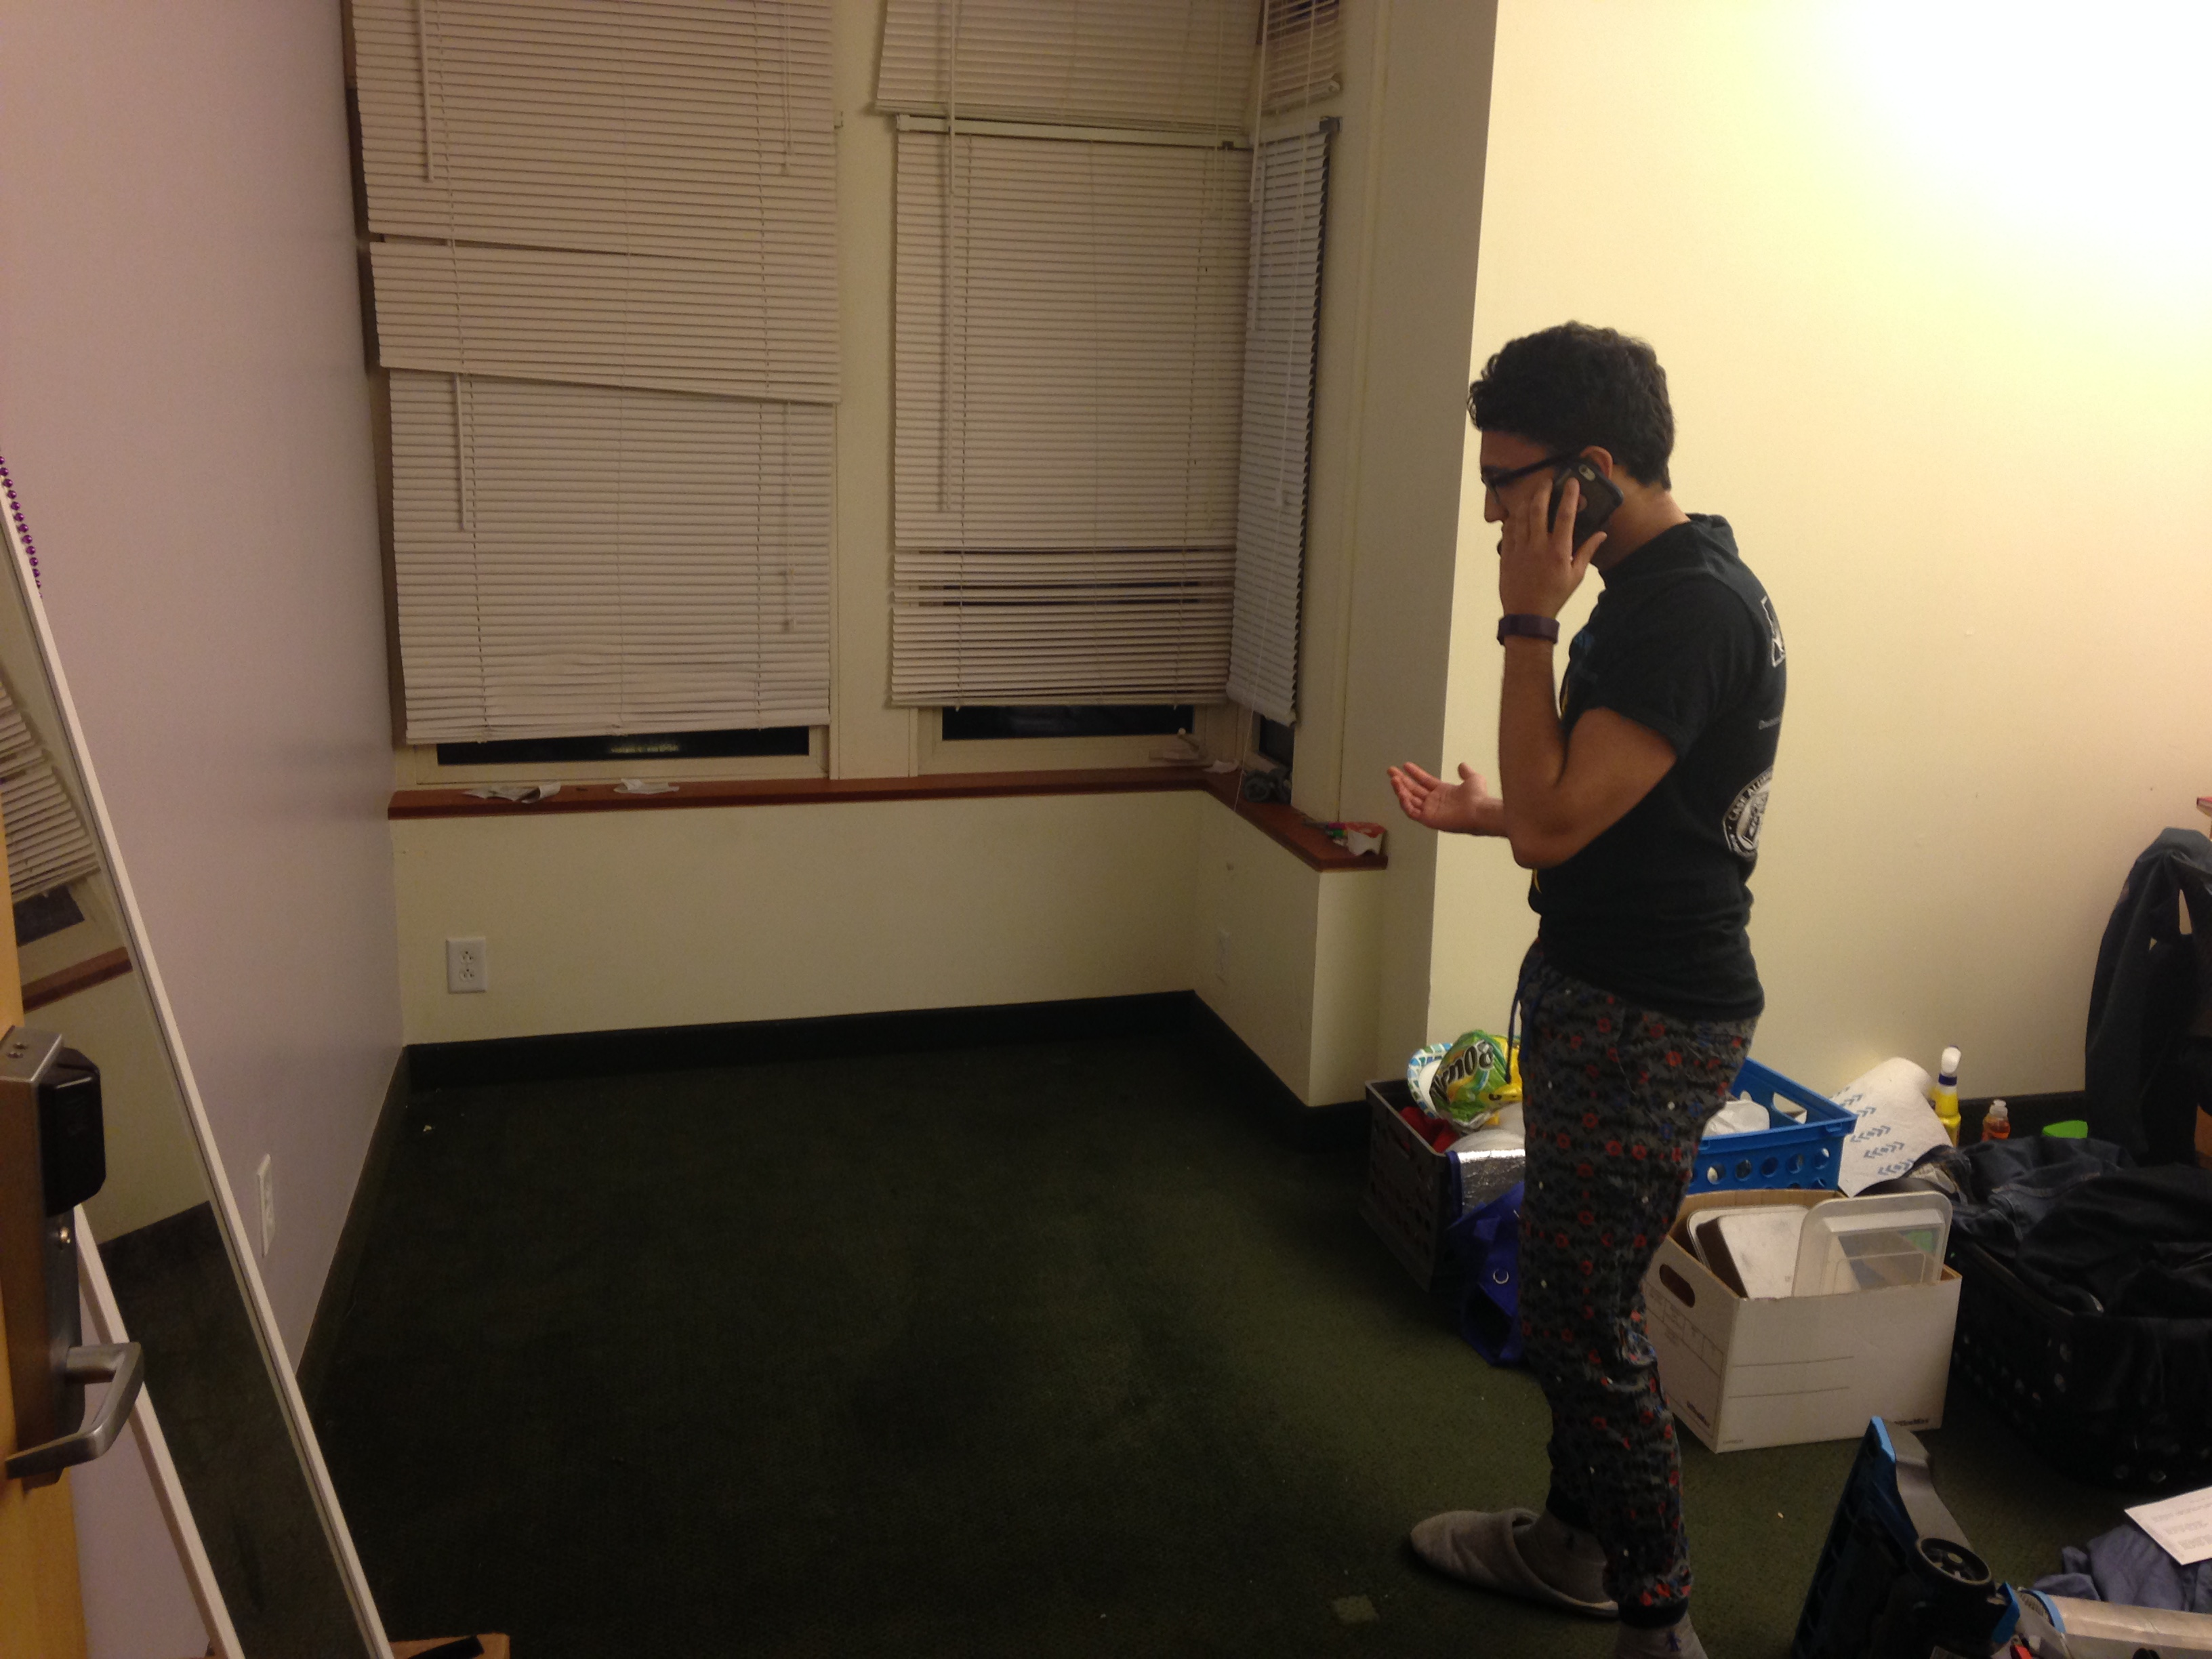 <p>Alaina Lisanti This past week, several students at Case Western Reserve University noted the same problem: various pieces of furniture were found missing from their suites. The students were quick to bring this up to their Residence Assistants and even sent maintenance requests for this problem, but the mystery of [&hellip;]</p>